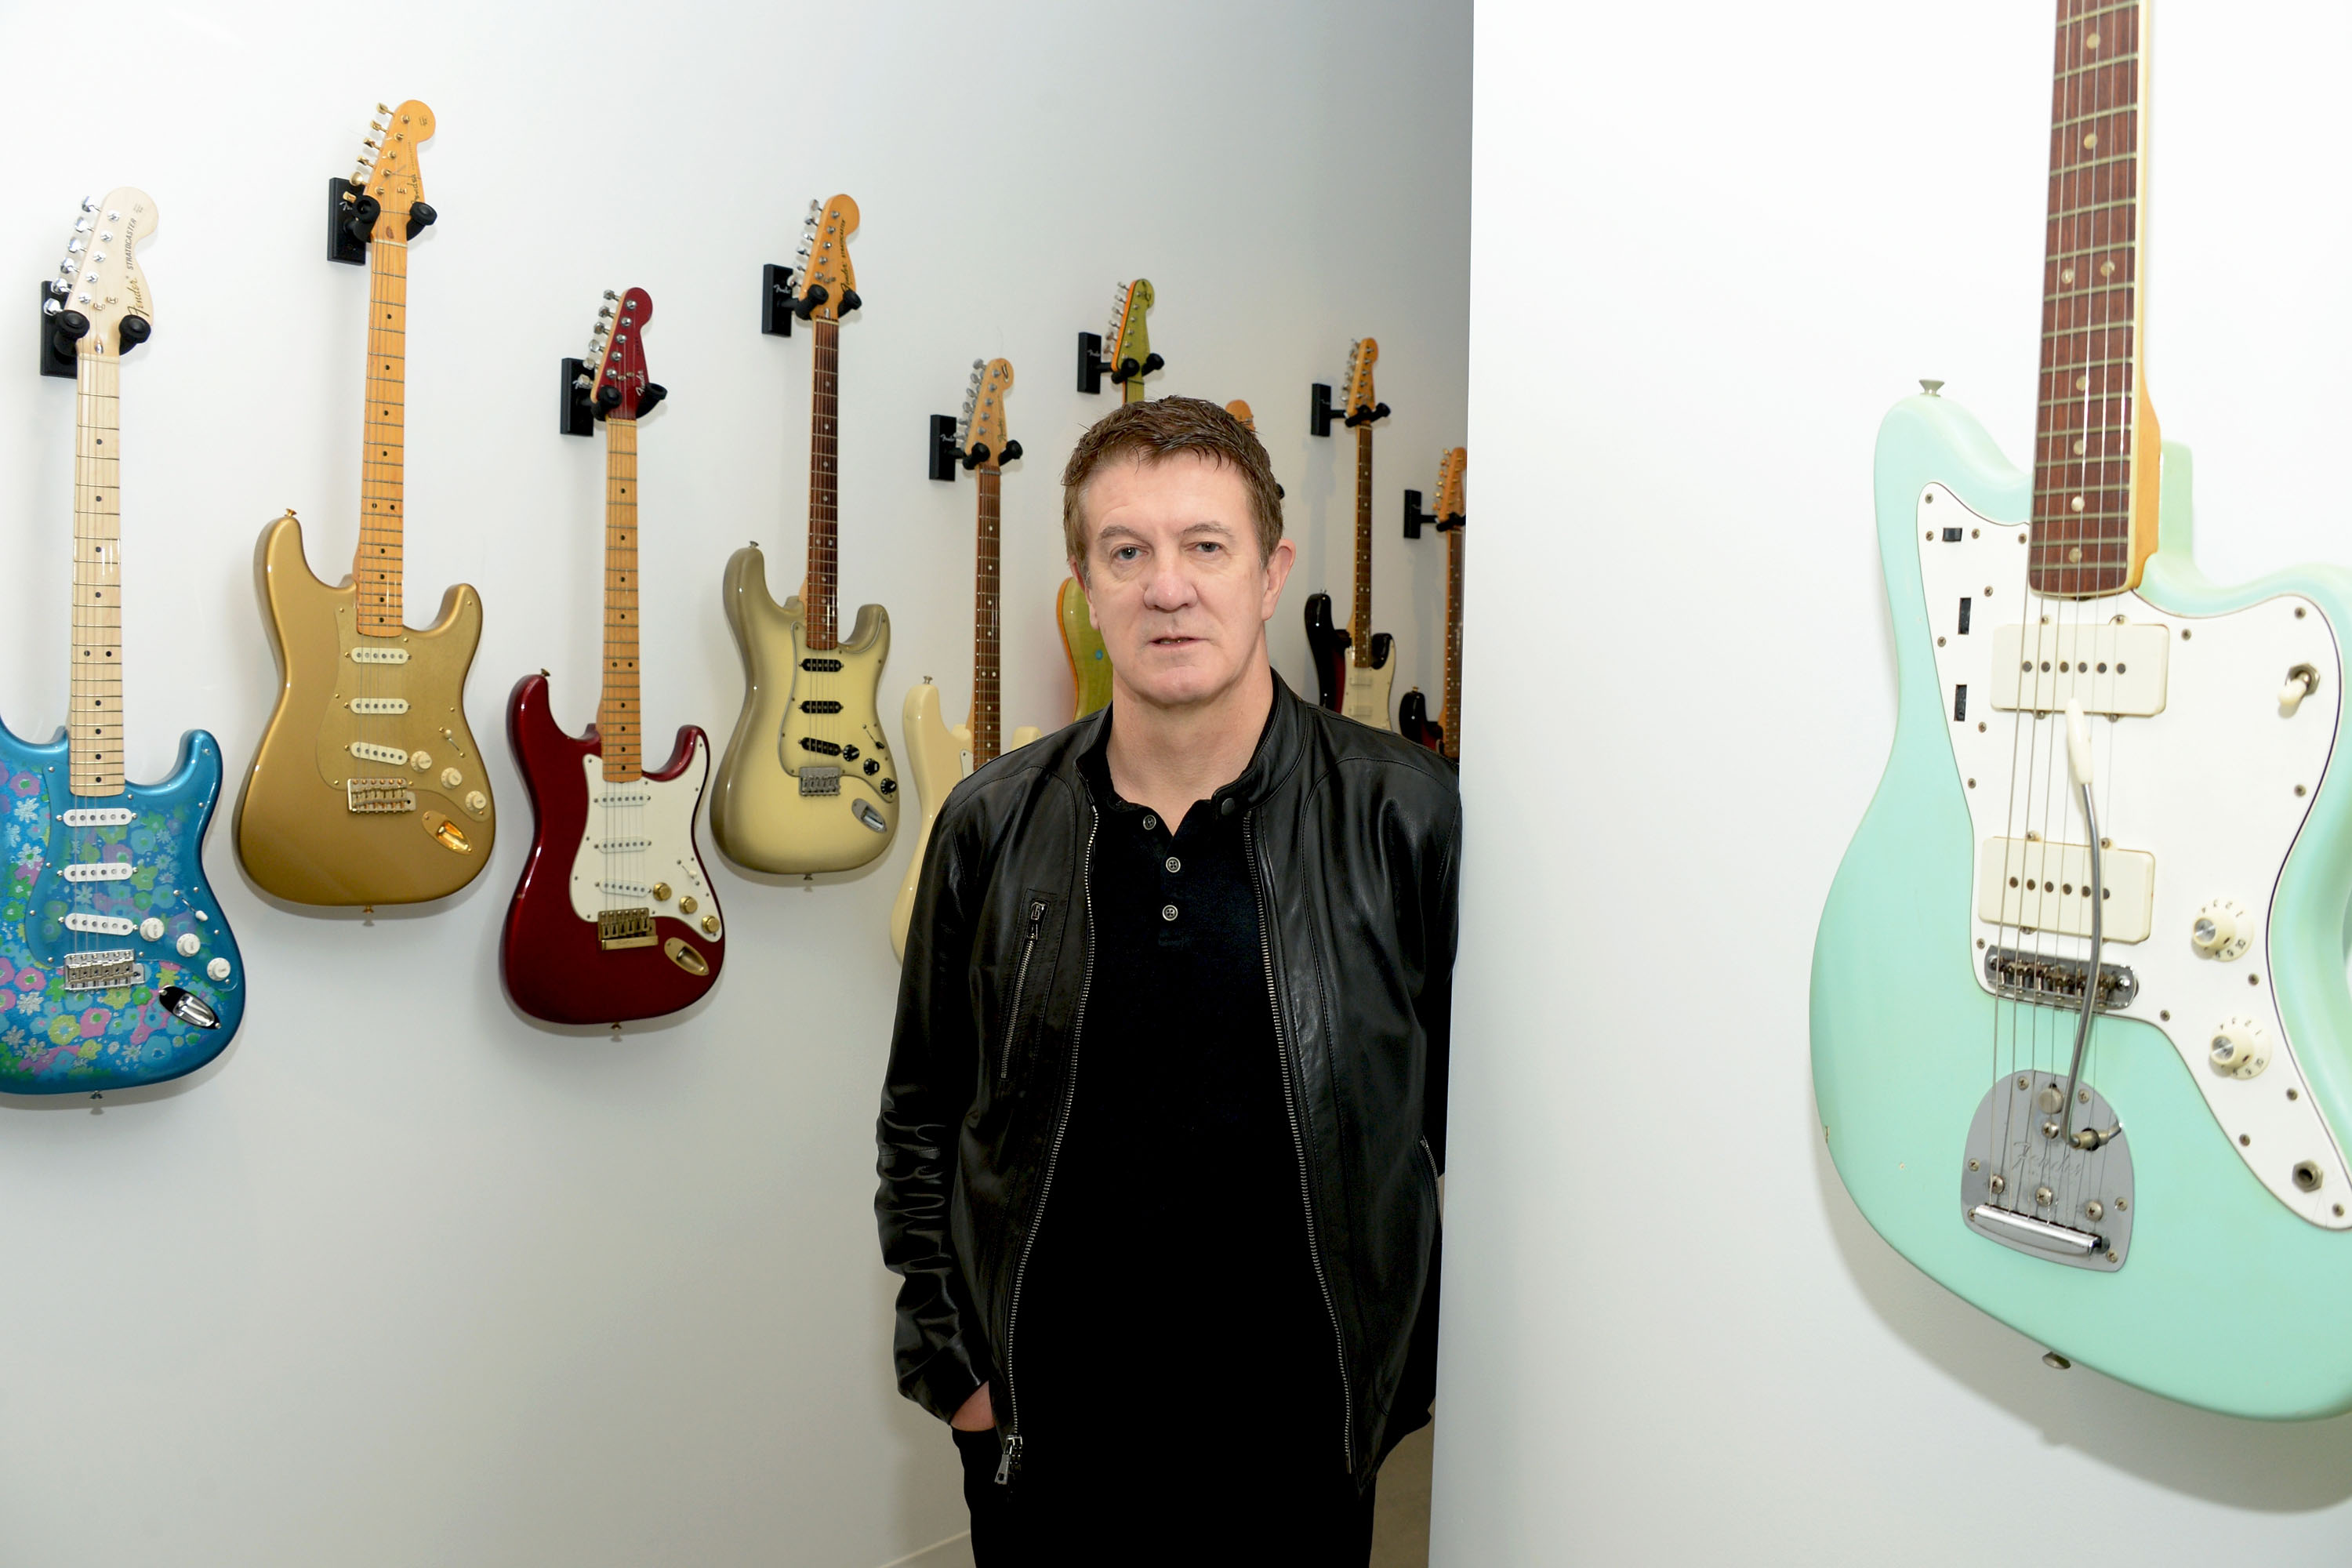 Fender Opens Office In Hollywood With Mayor Garcetti + Councilman O'Farrell At Ribbon Cutting